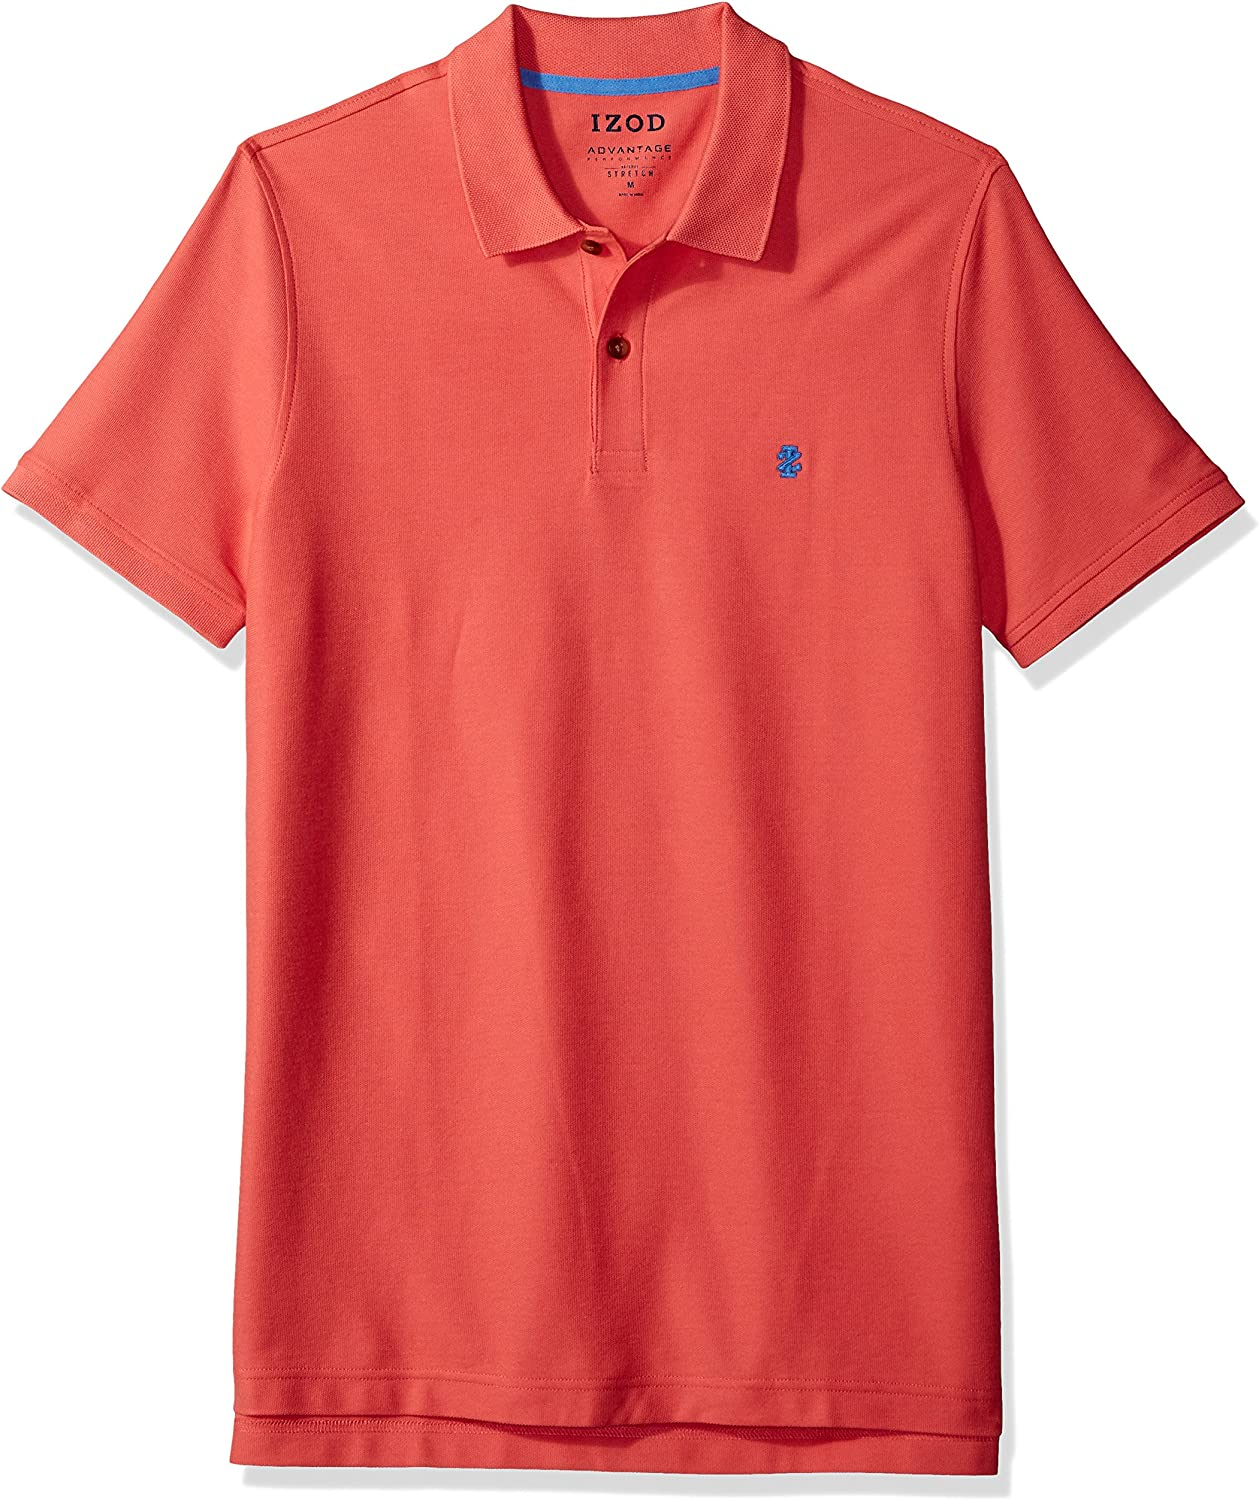 Izod Mens Slim Fit Advantage Performance Short Sleeve Polo Shirts Discontinued by Manufacturer